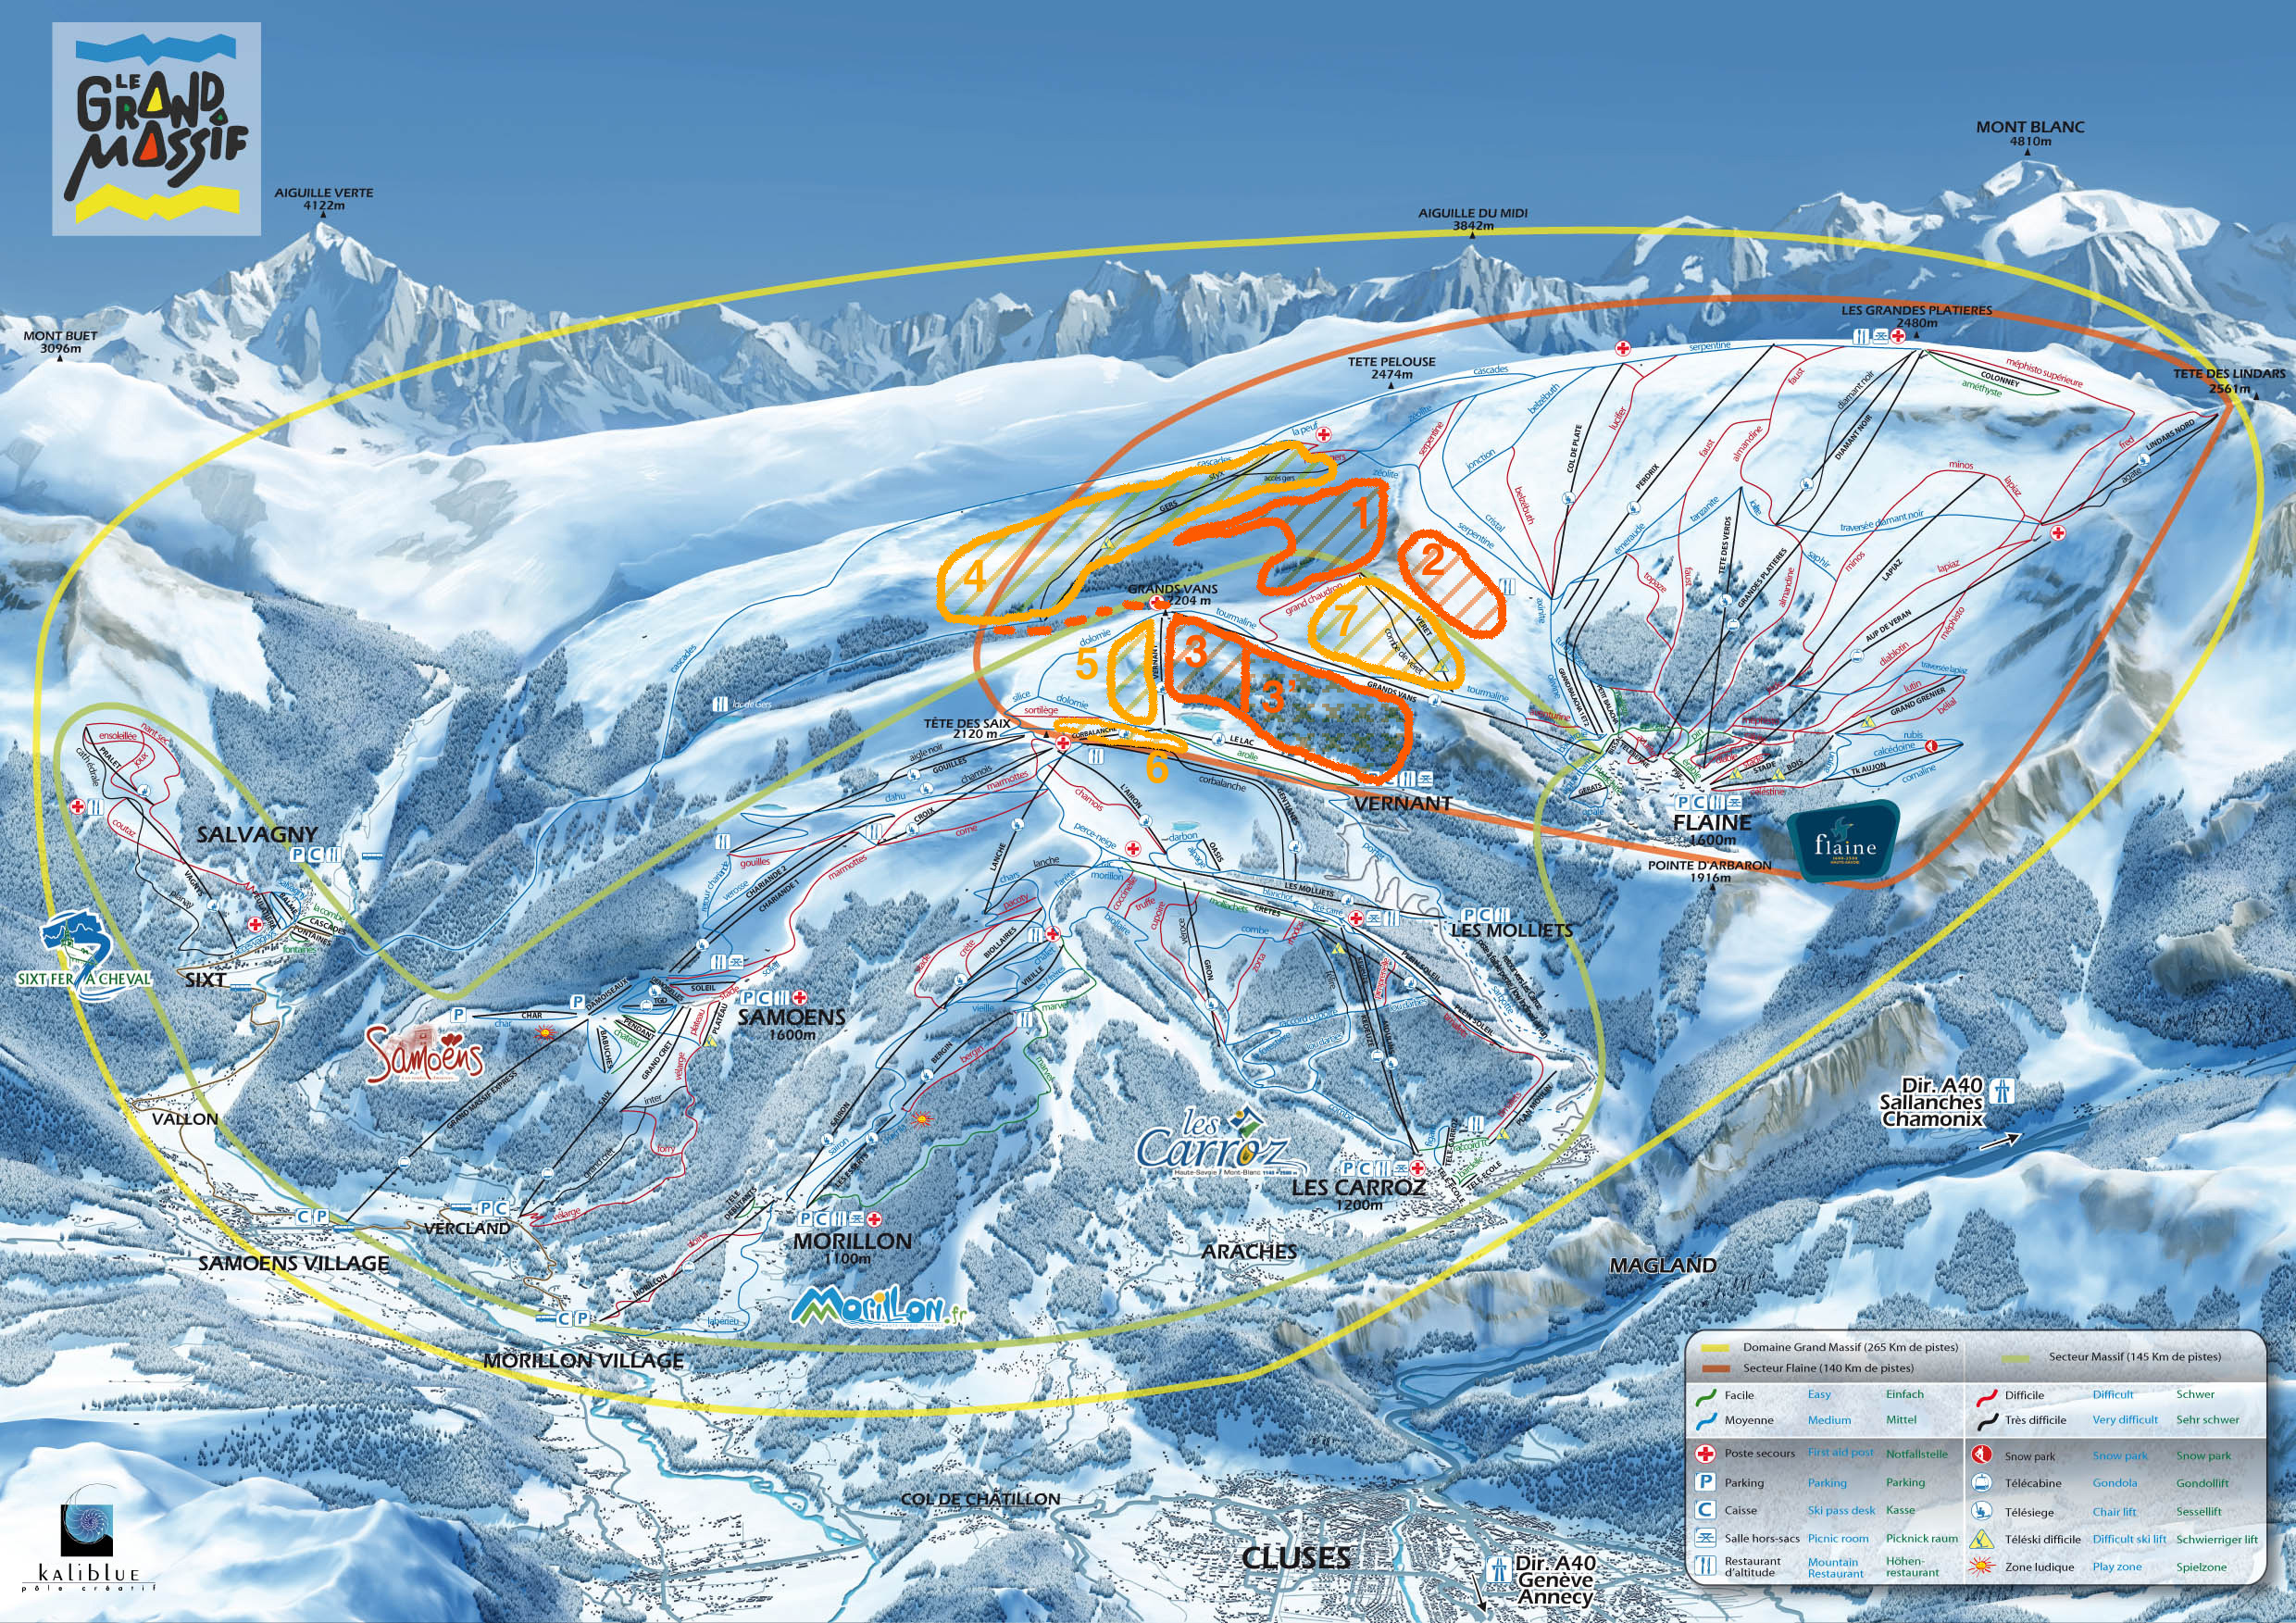 Grand Massif (Flaine) freeride map